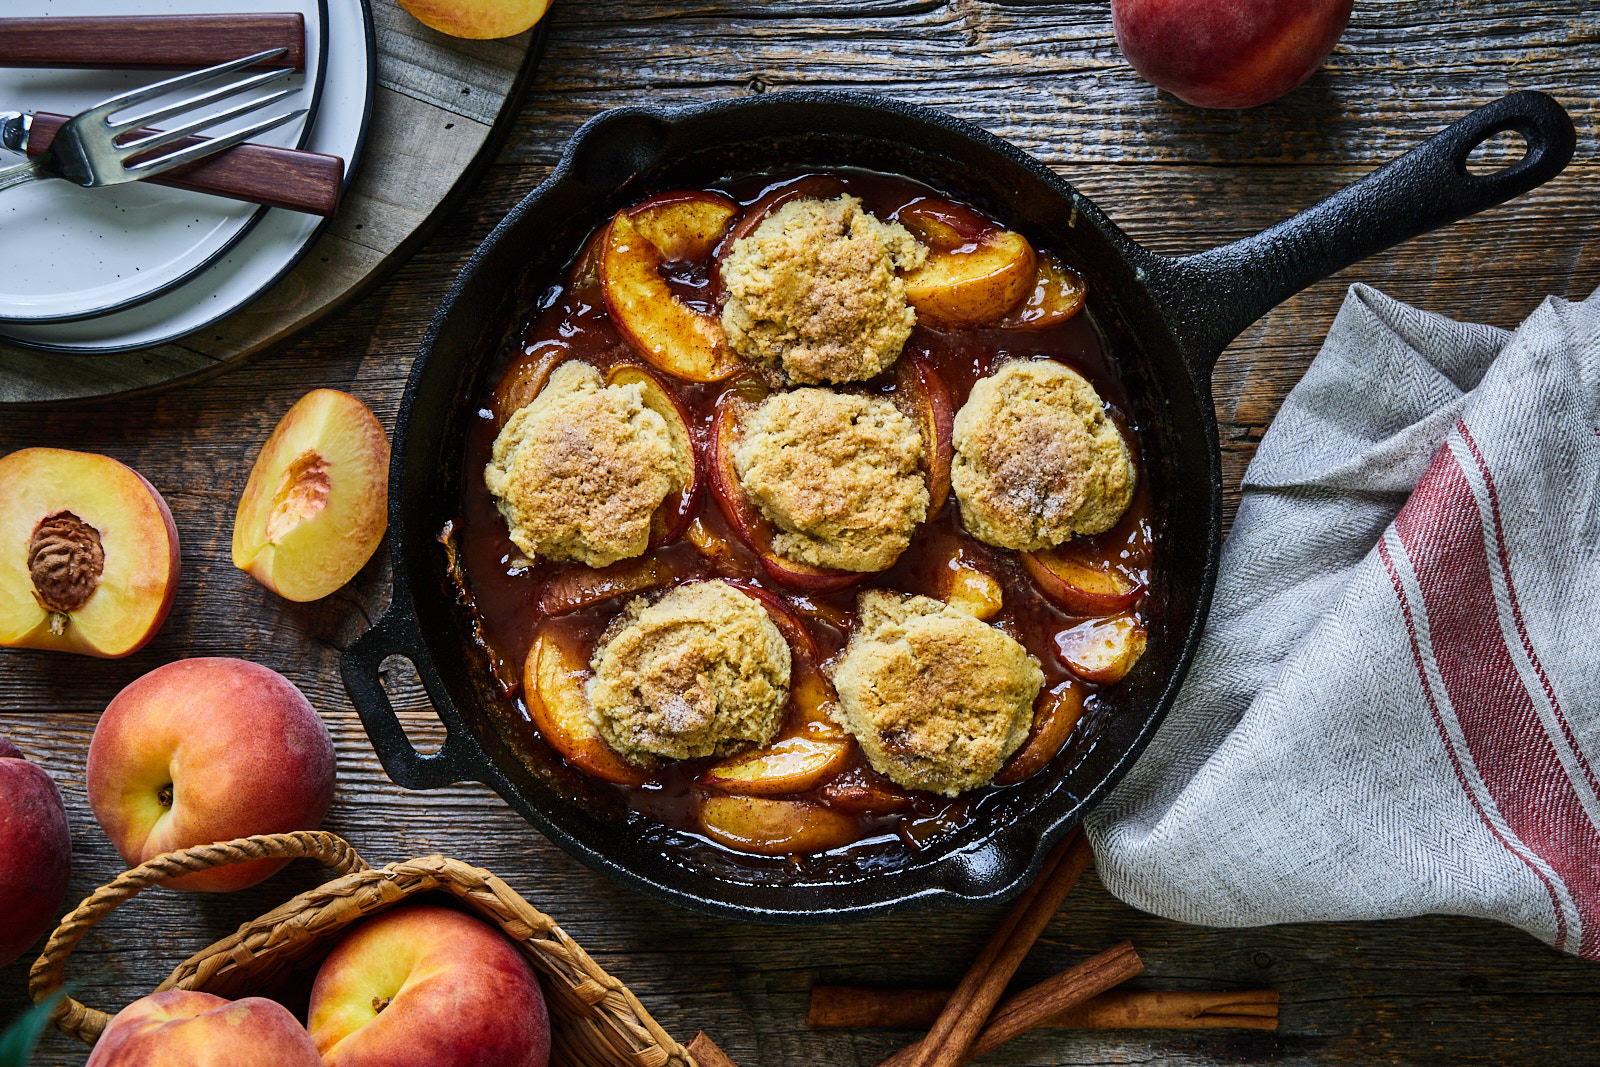 Grilled skillet peach cobbler with almond flour biscuit topping